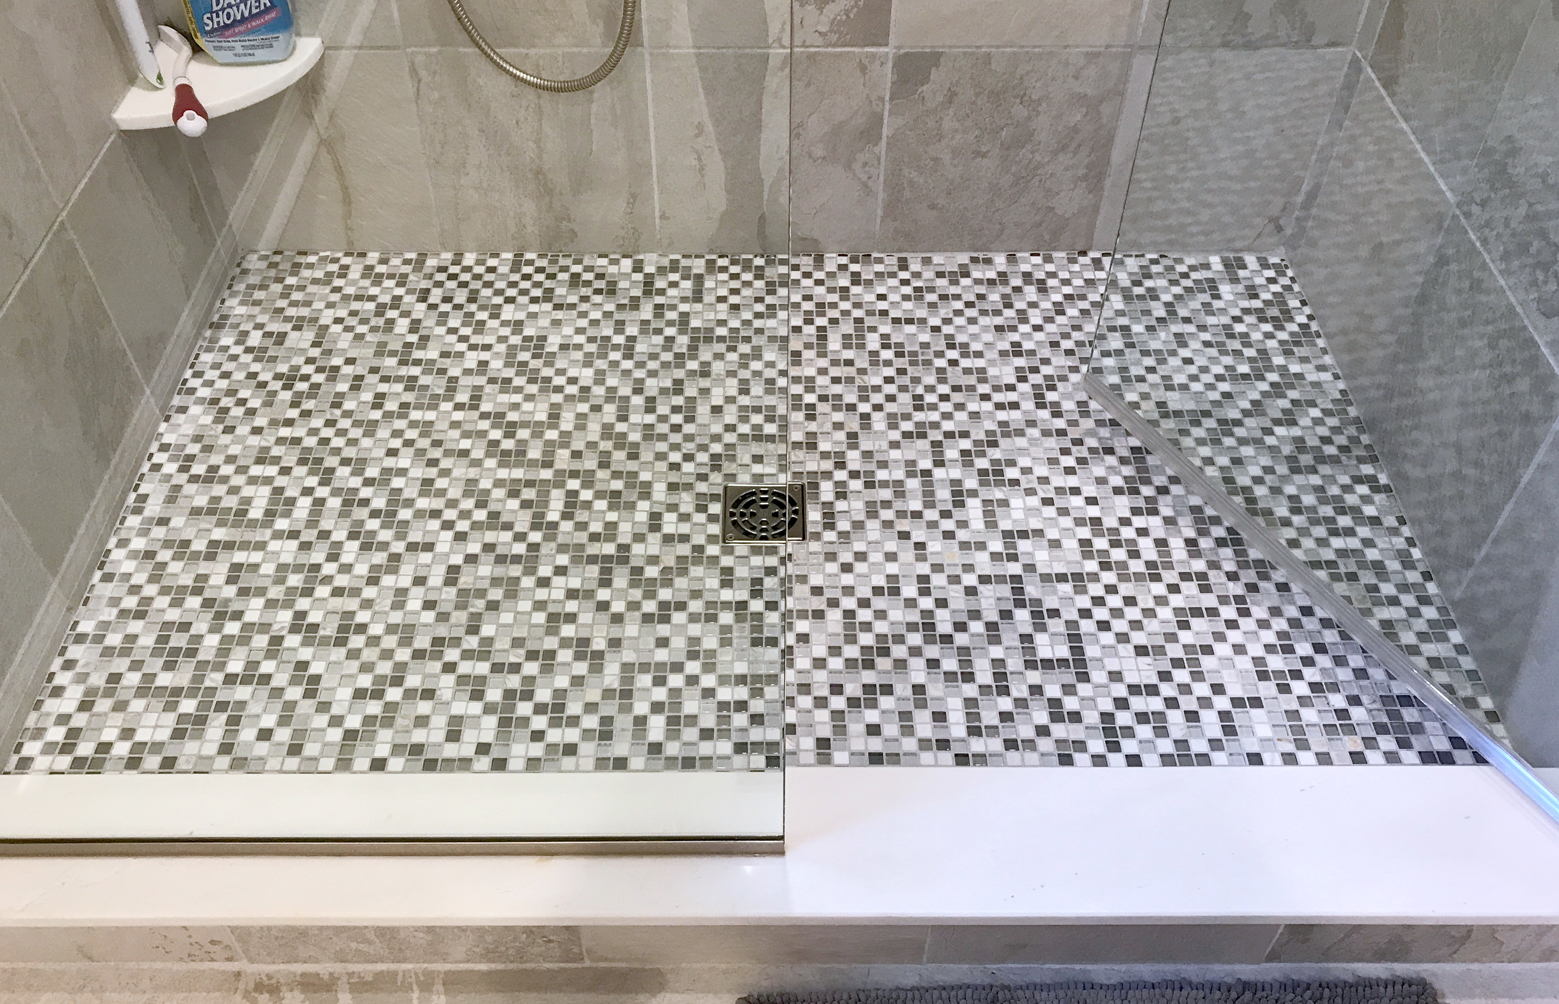 canada new eyagci by mia shower in bishop tan pebble book of com floor border tiles bathroom floors tile remodel flooring sliced white and model traveritne